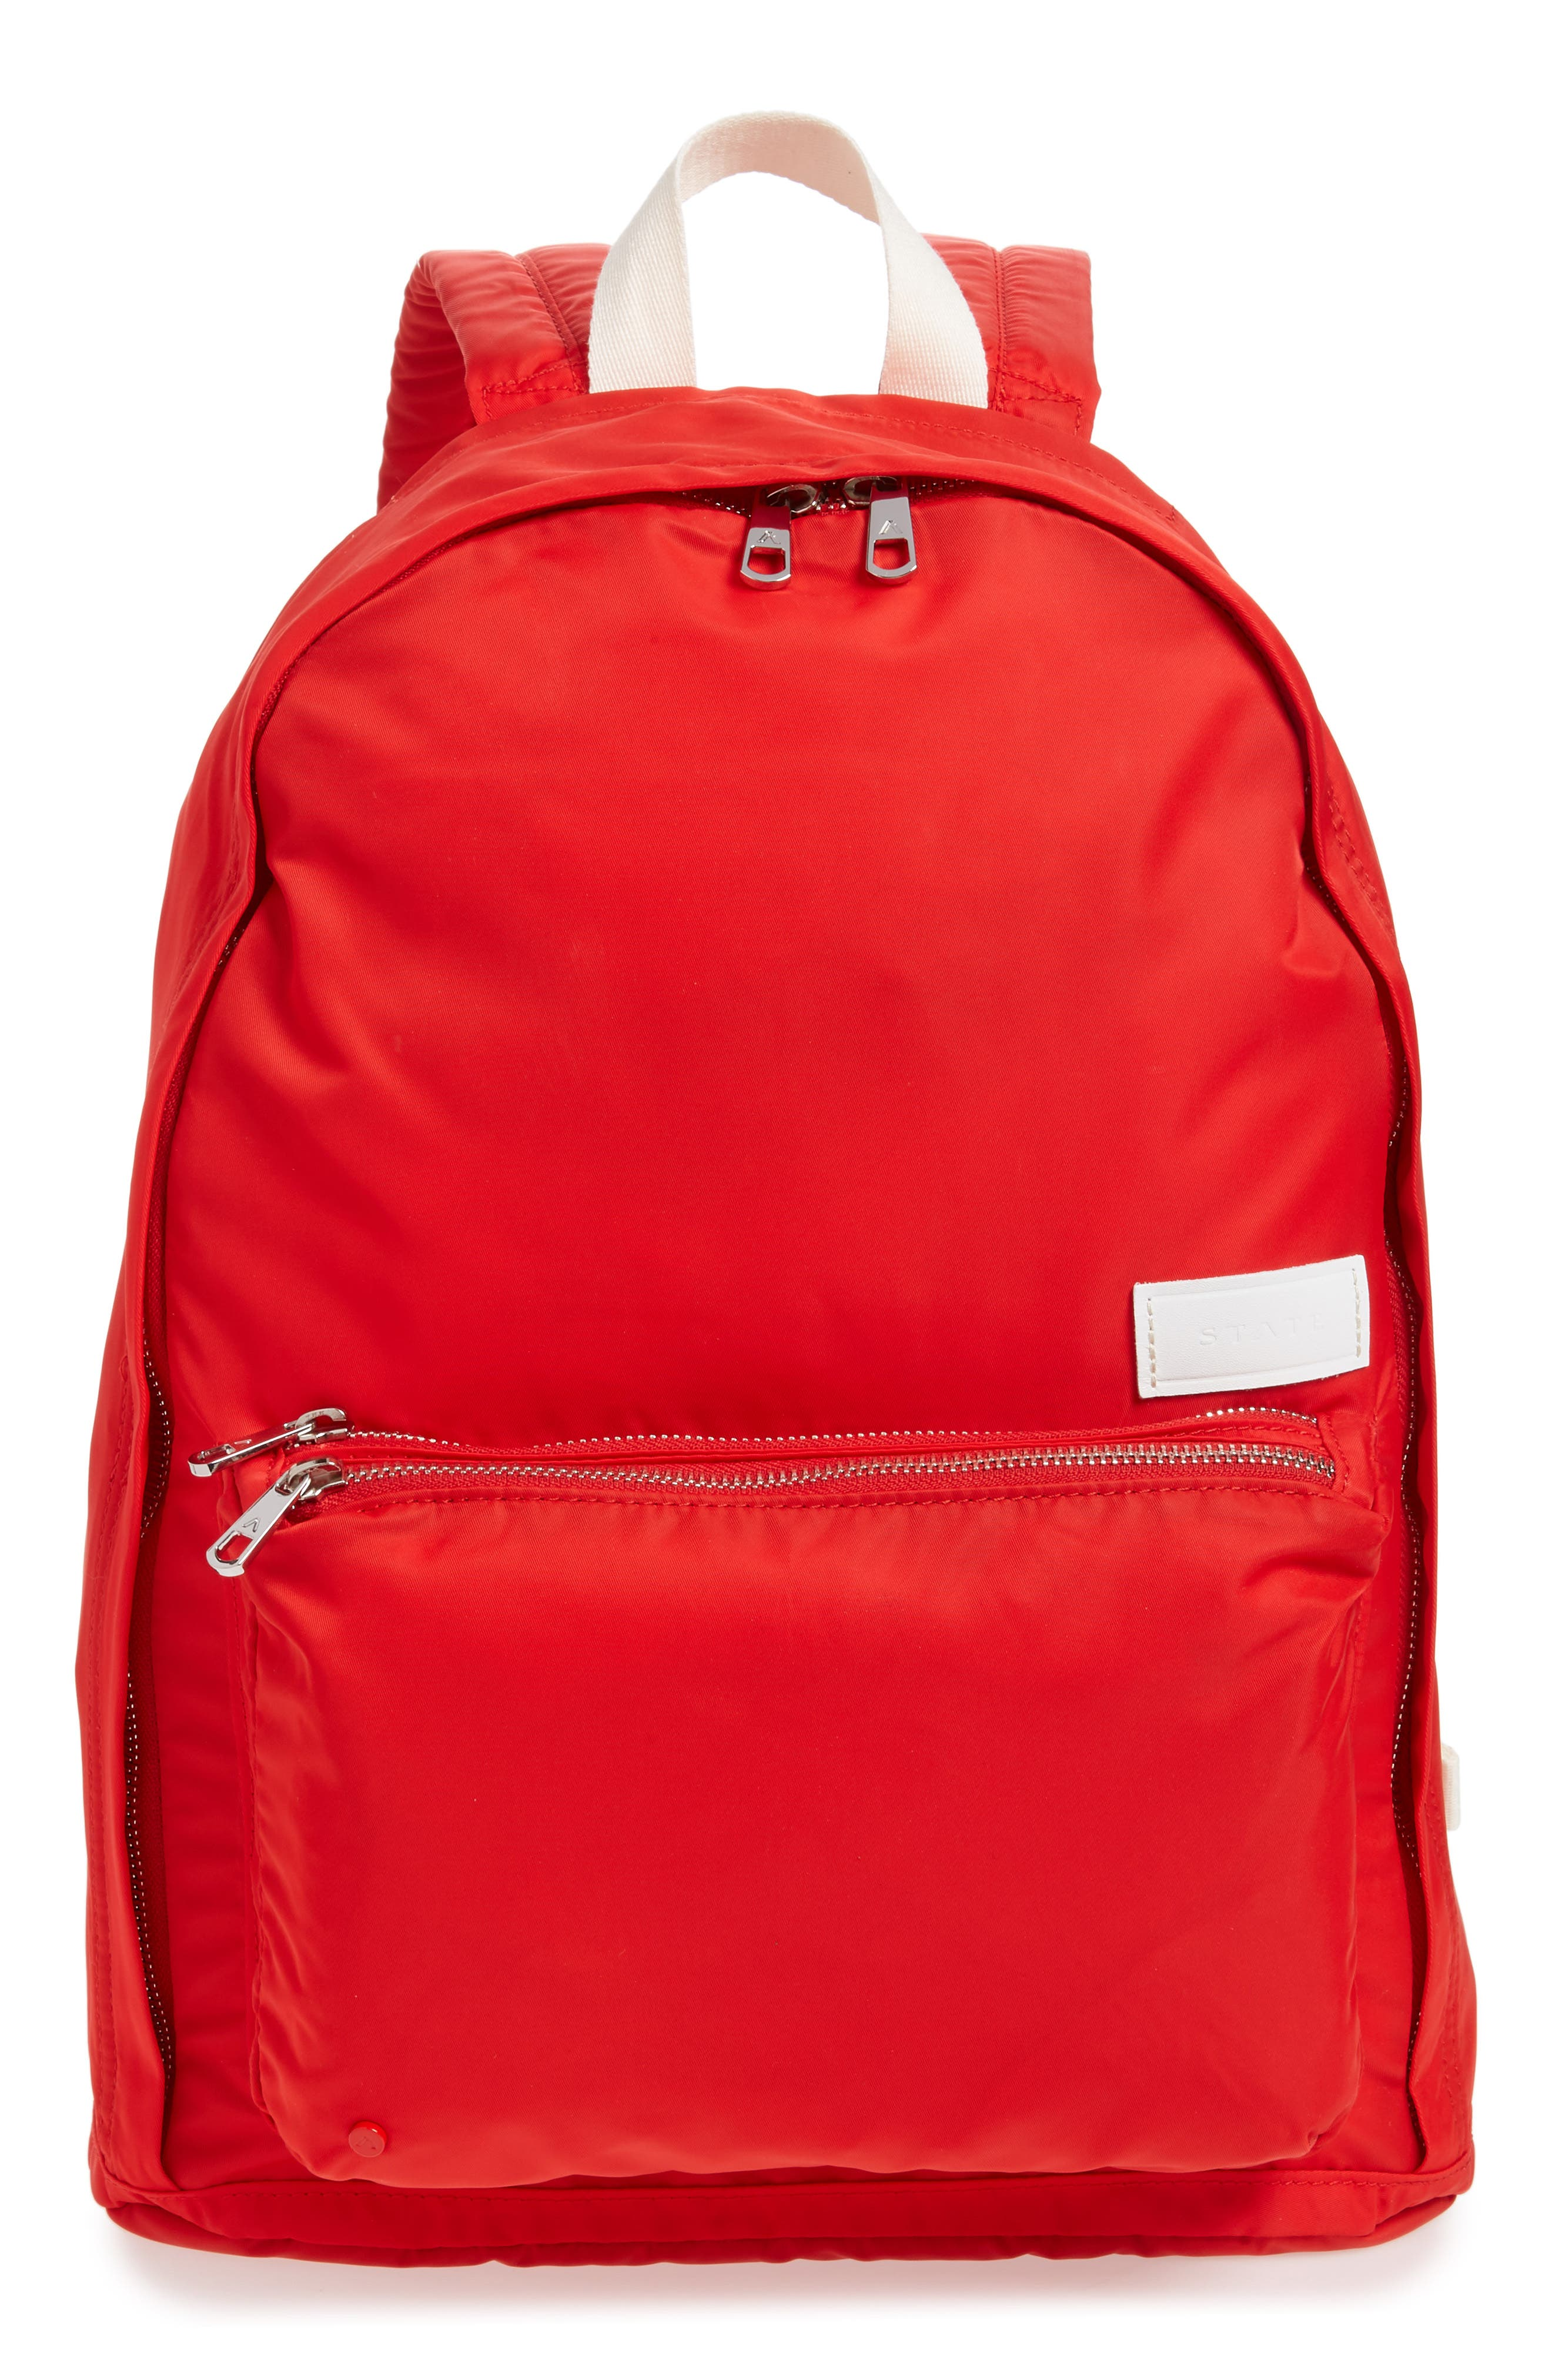 STATE Bags Heights Lorimer Nylon Backpack